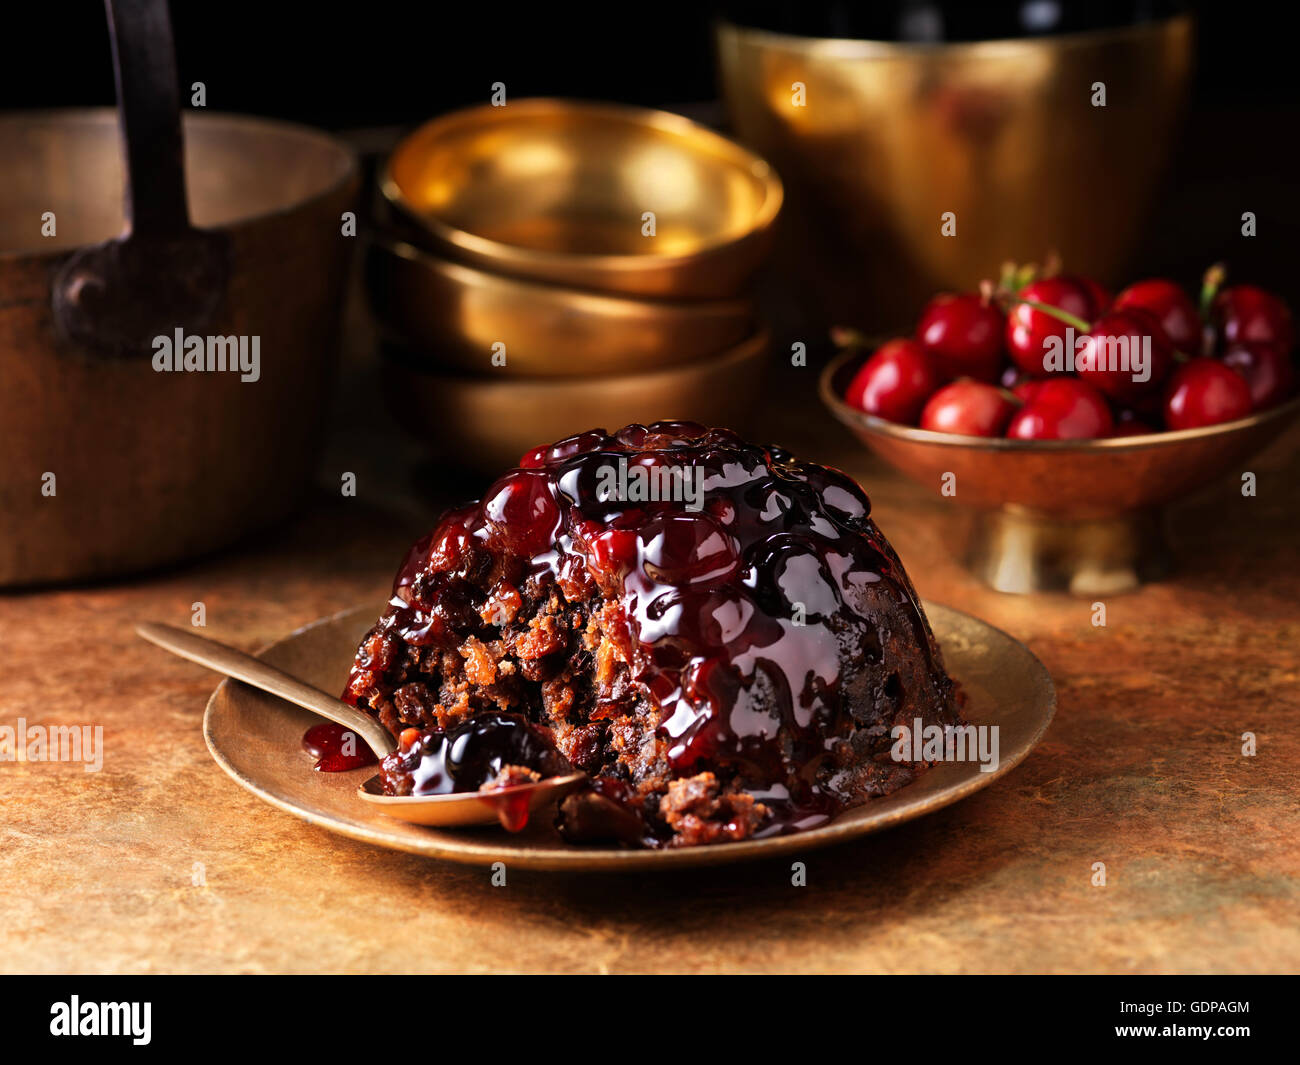 Black forest christmas pudding - Stock Image